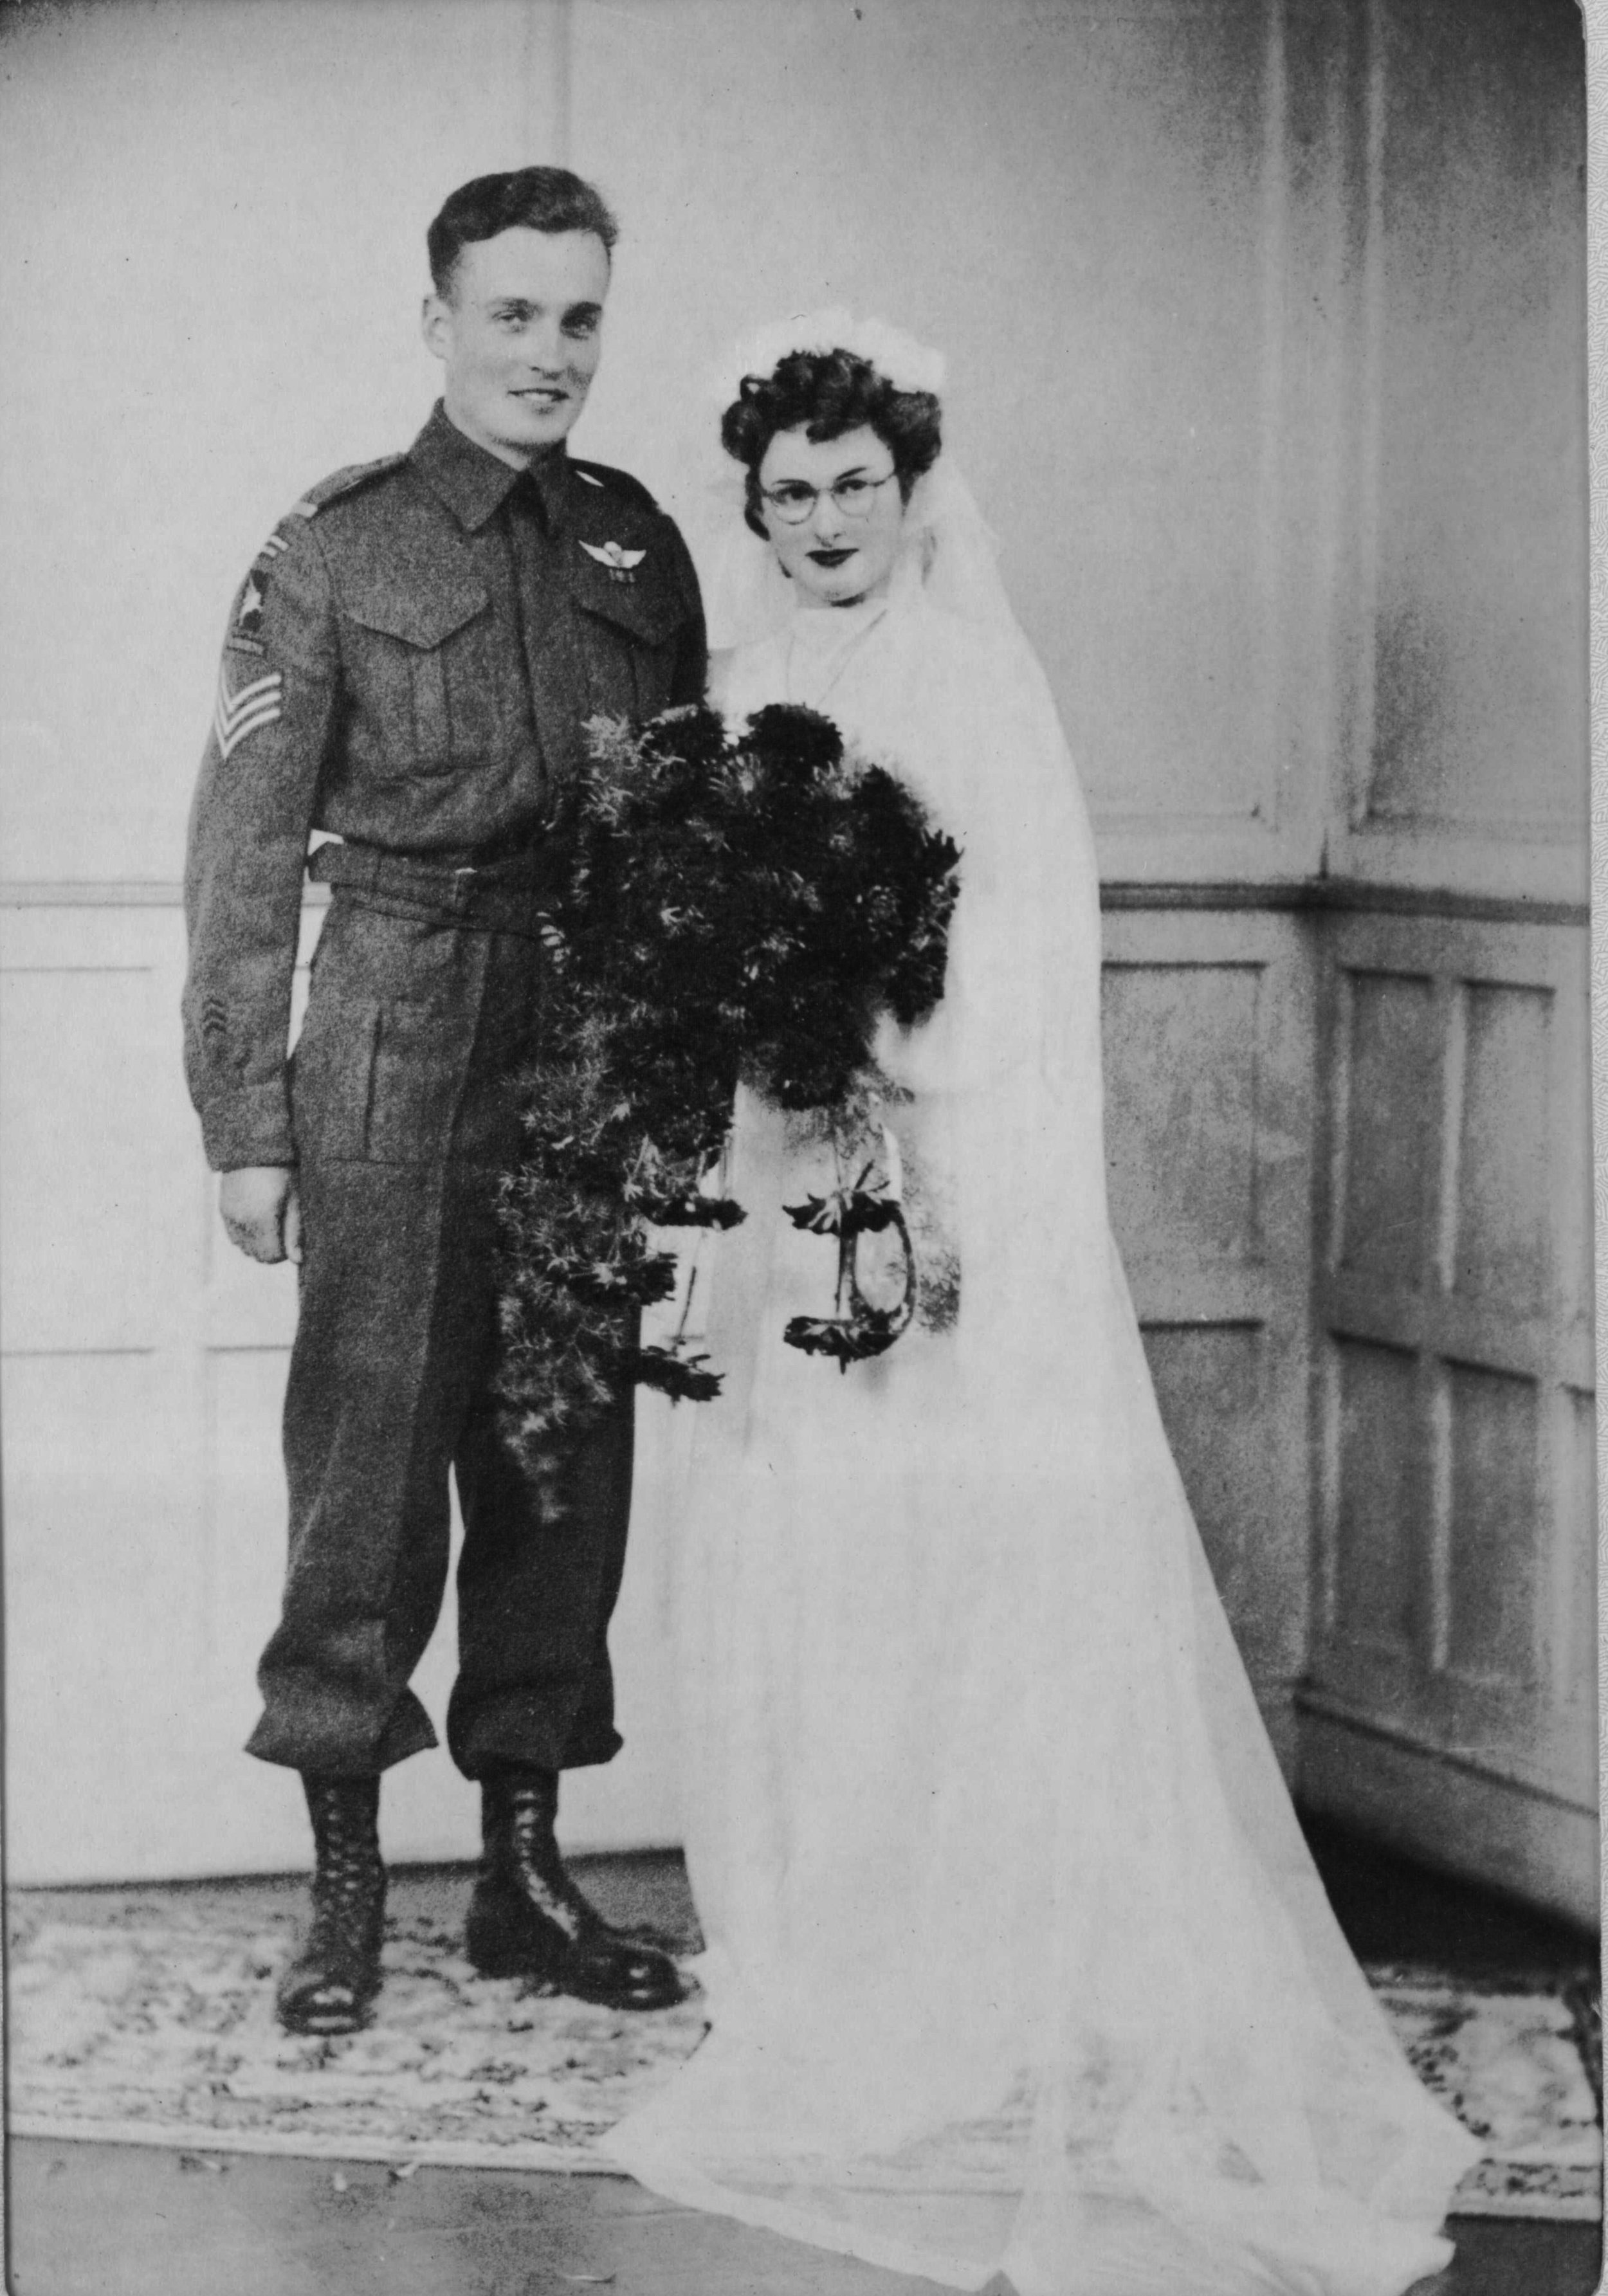 c. 1944. Wedding photo of Bruce Blagborne and Doiran Phillips.